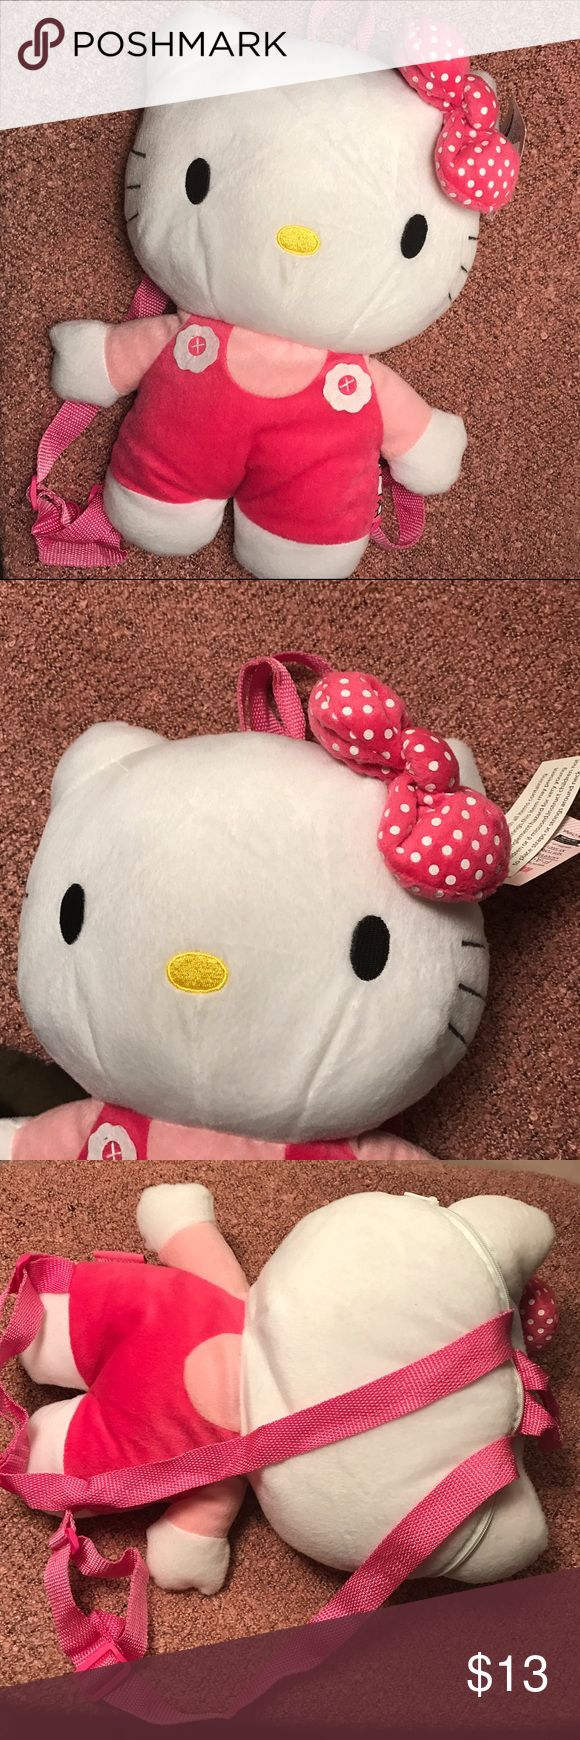 Hello Kitty Plush Backpack Tags still attached, never used, Hello Kitty Plush Backpack. Adjustable straps, zipper works👍🏽 very soft ! Hello Kitty Bags Backpacks